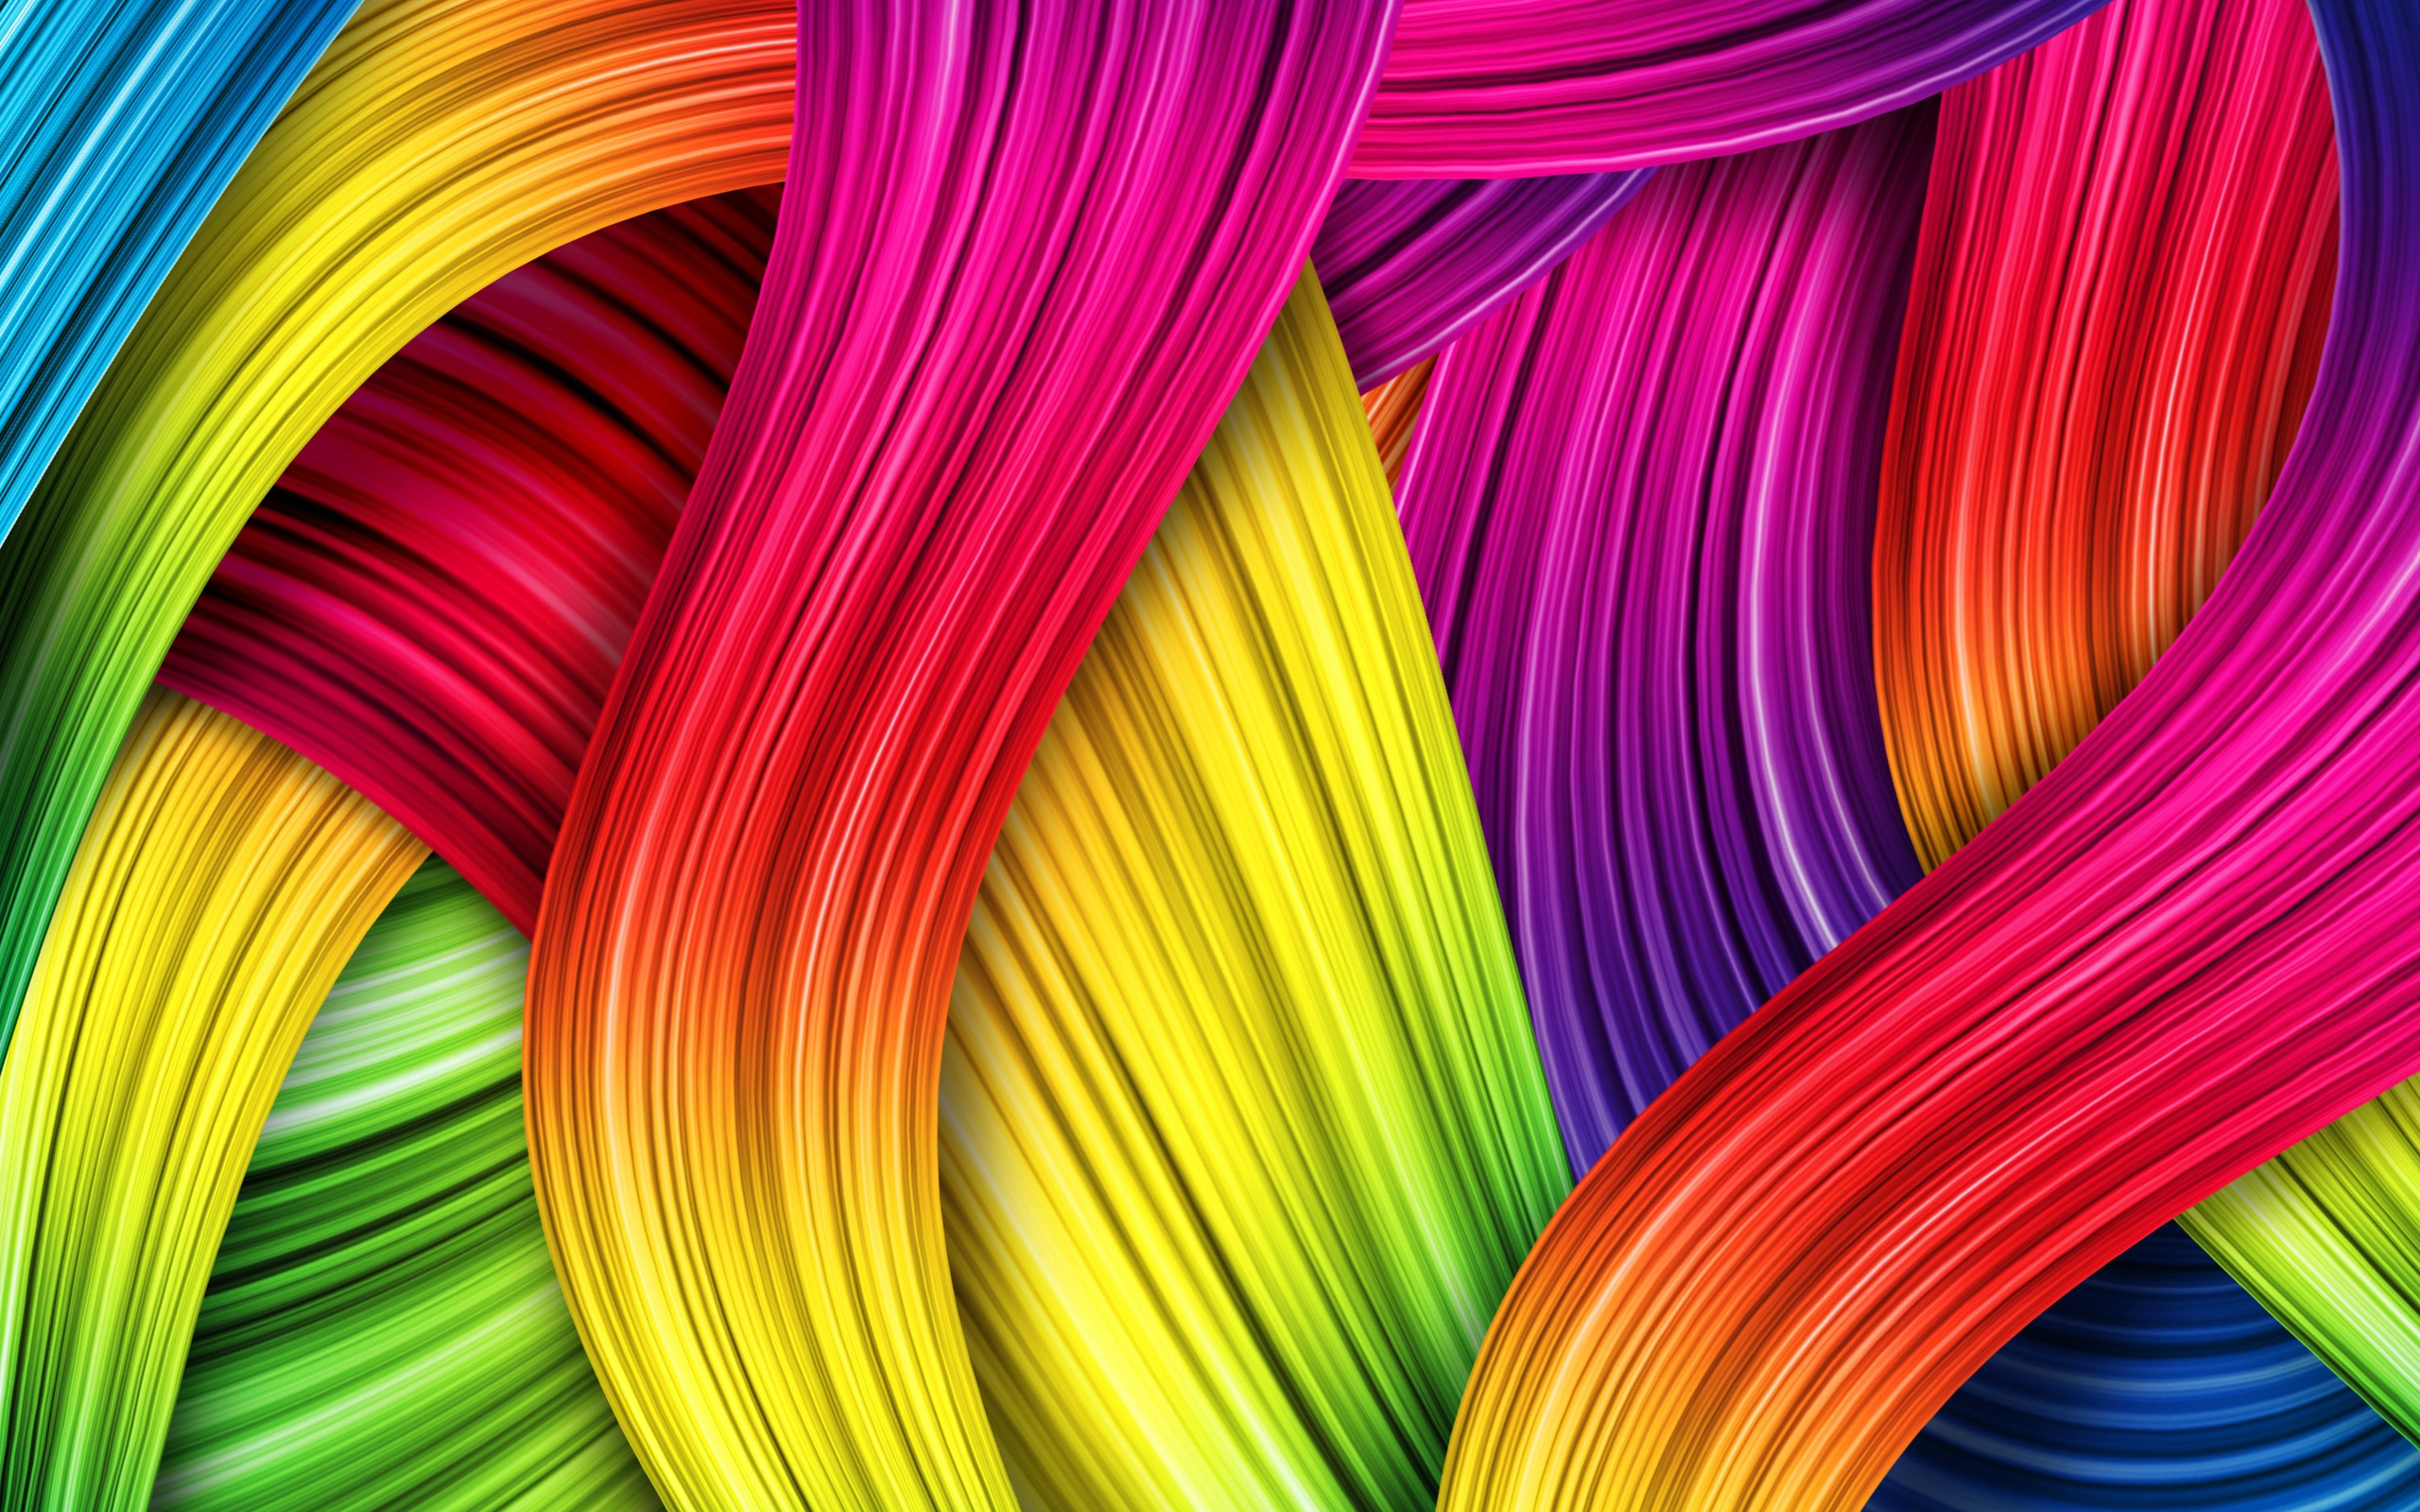 Colorful Lines Abstract Patterns HD Wallpapers   High Definition 2560x1600